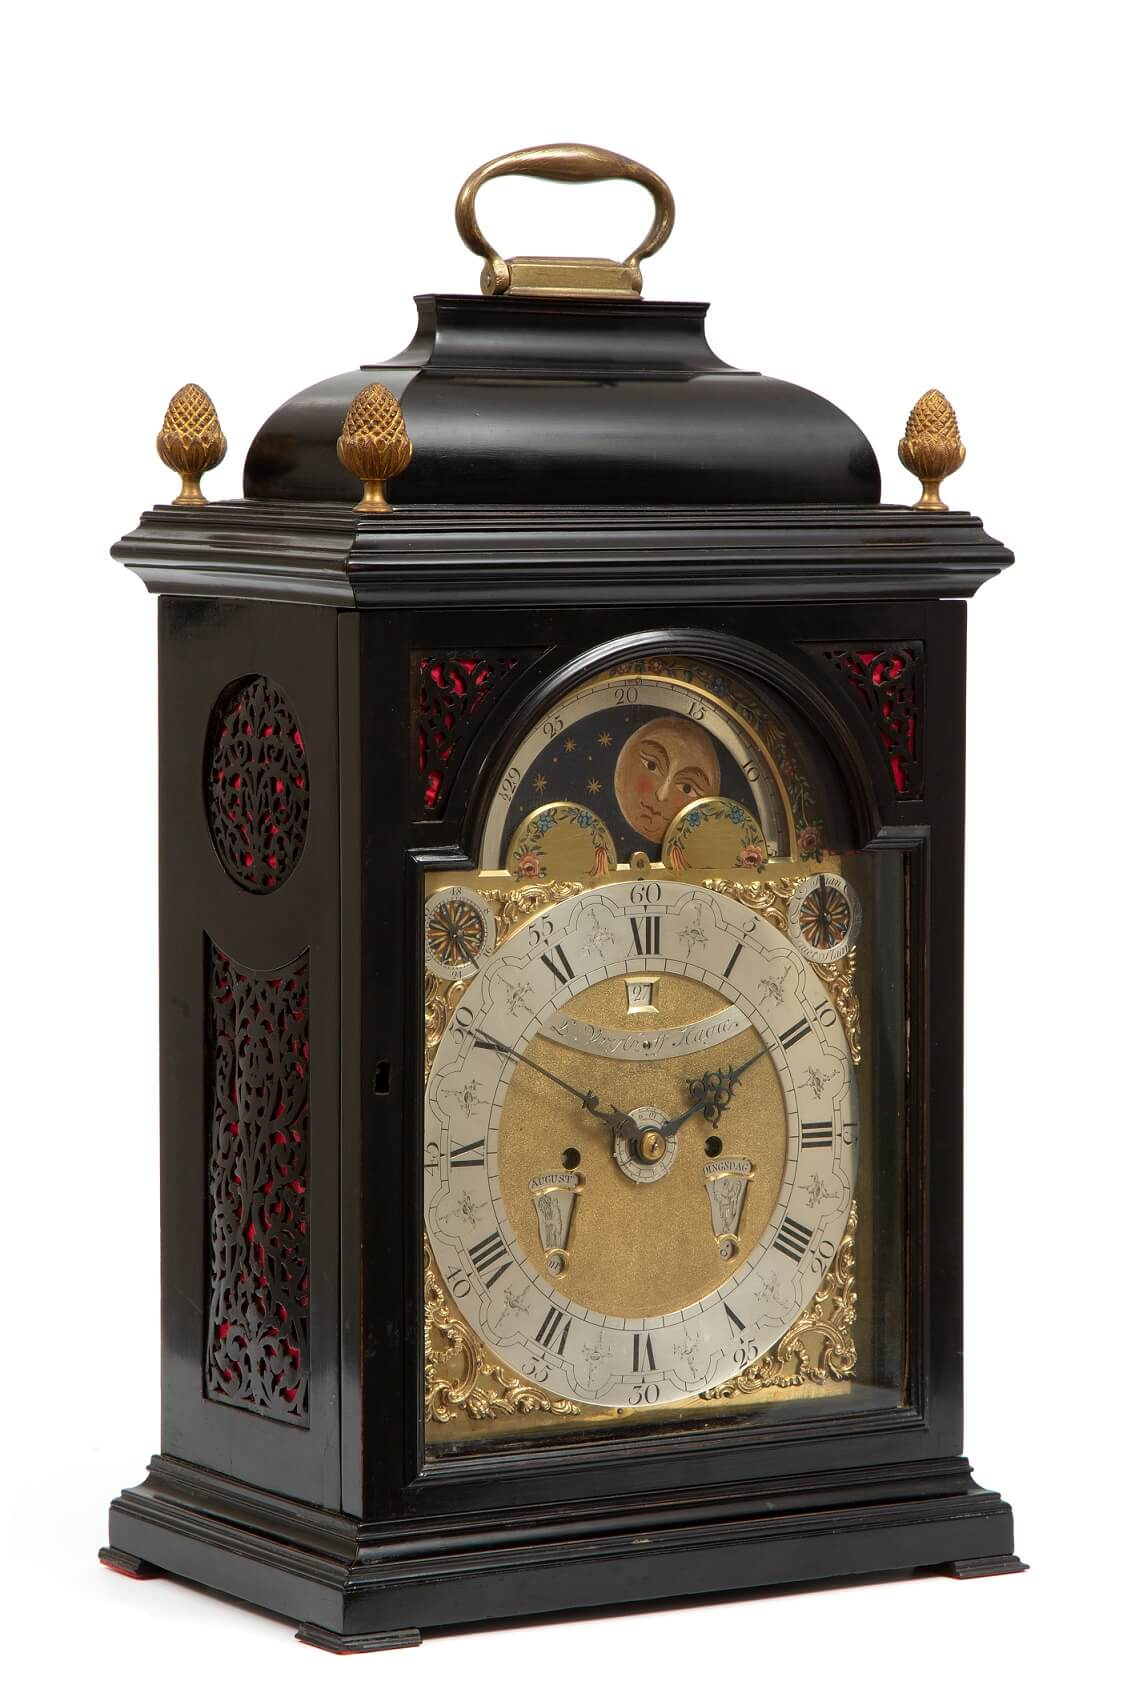 Dutch-ebonised-striking-table-clock-calendar-moonphase-antique-clock-Vrijthoff-the hague